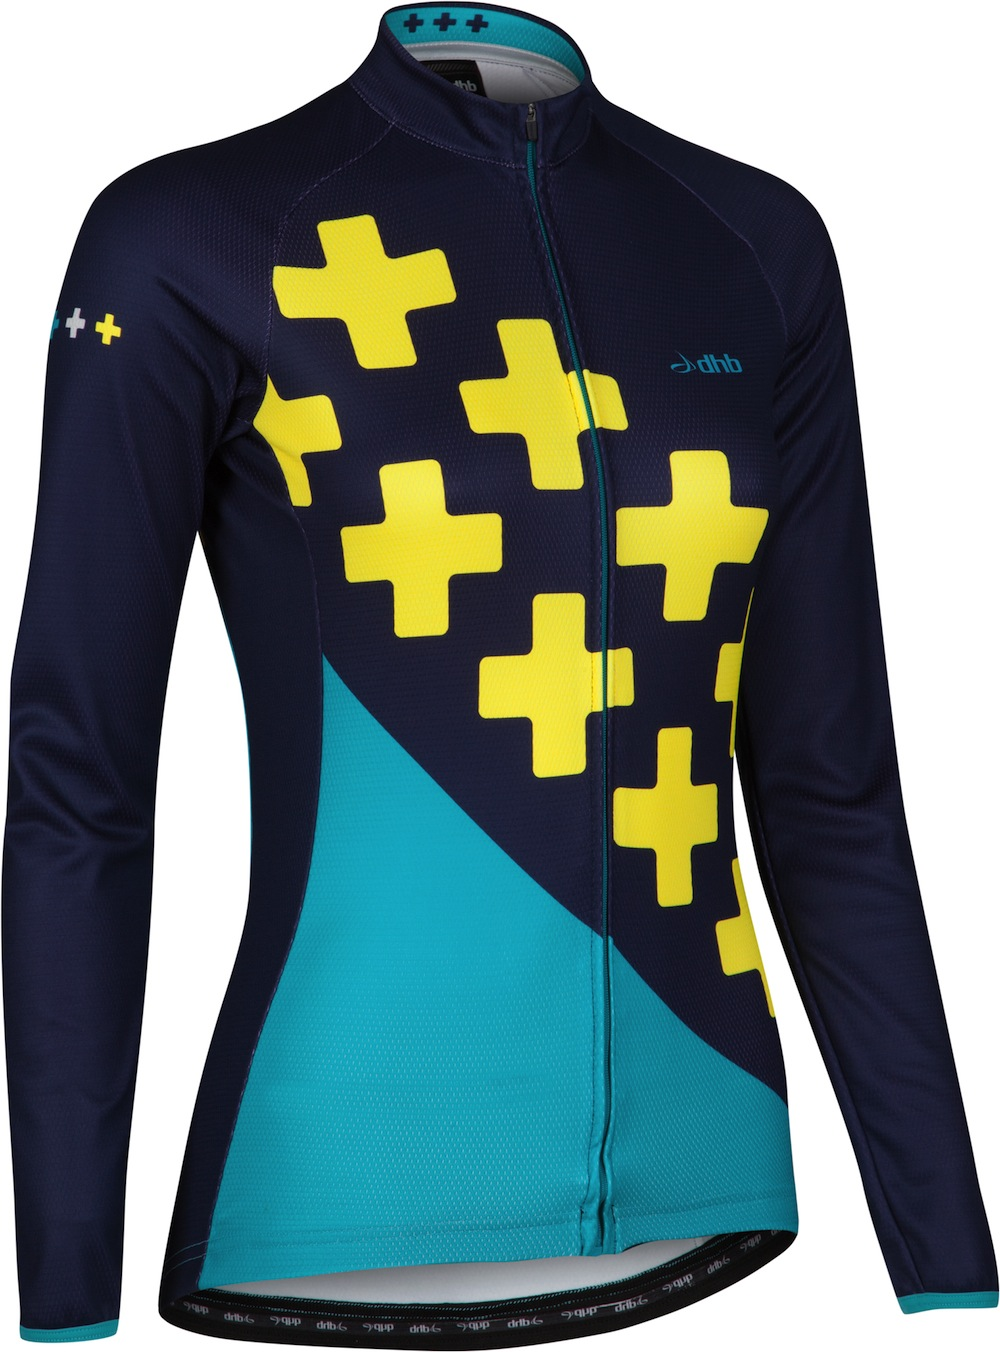 2d36618ae Wiggle s dhb winter clothing range extends to three lines - Cycling ...